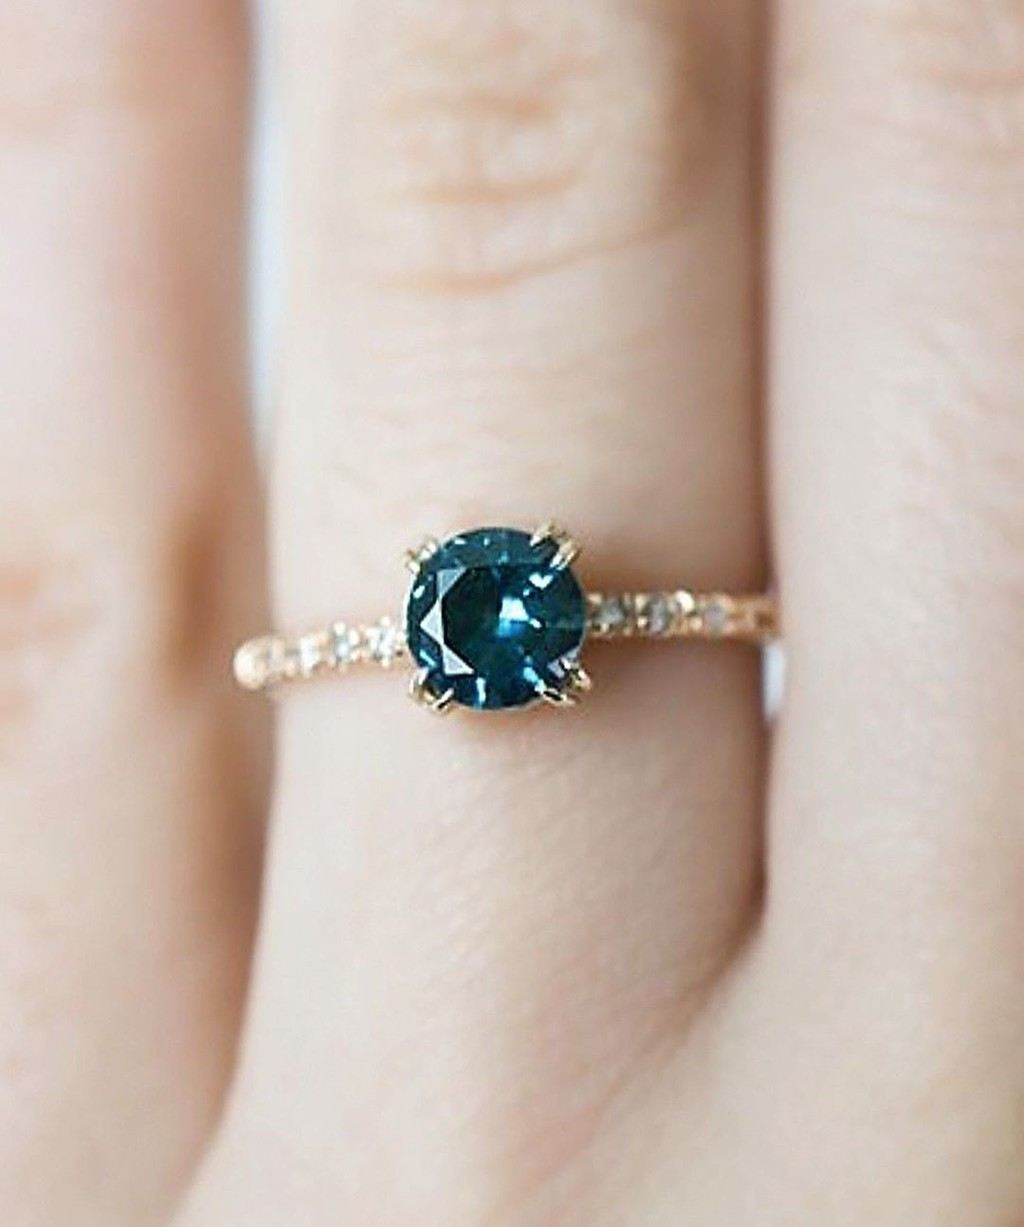 The Original Classic Teal Montana Sapphire & Diamond Classic Solitaire💙💚💙 It's doesn't get much better than these